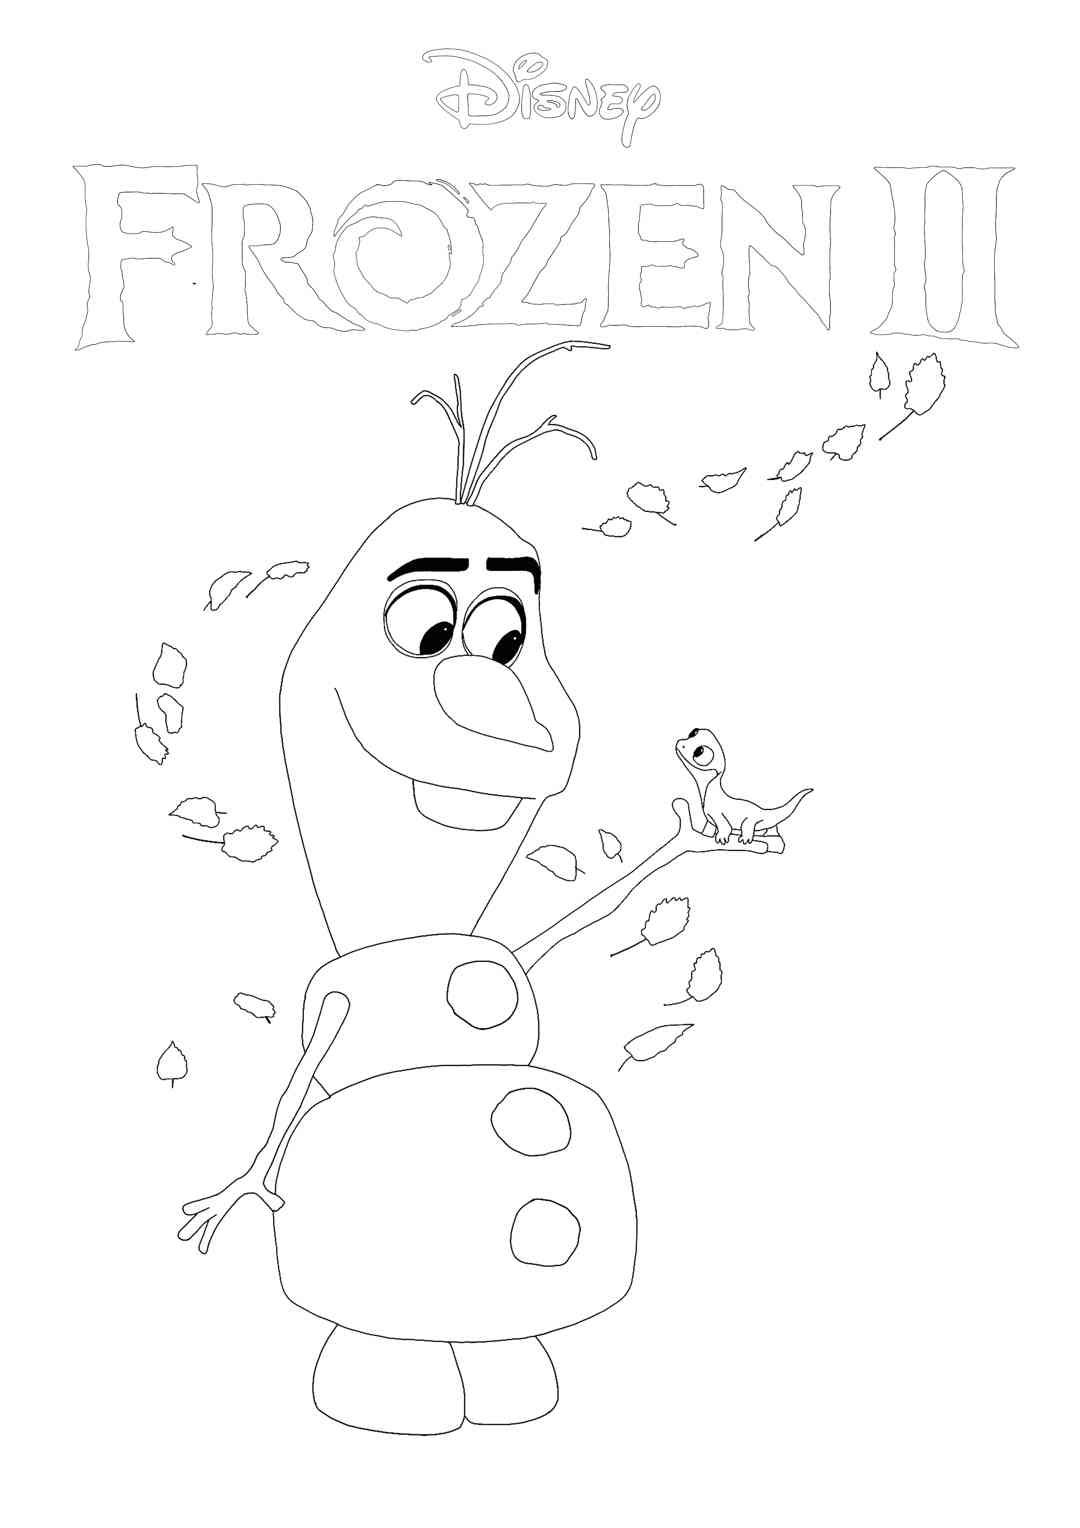 Frozen 2 Olaf And Bruni Coloring Page Disney Coloring Sheets Frozen Coloring Pages Unicorn Coloring Pages